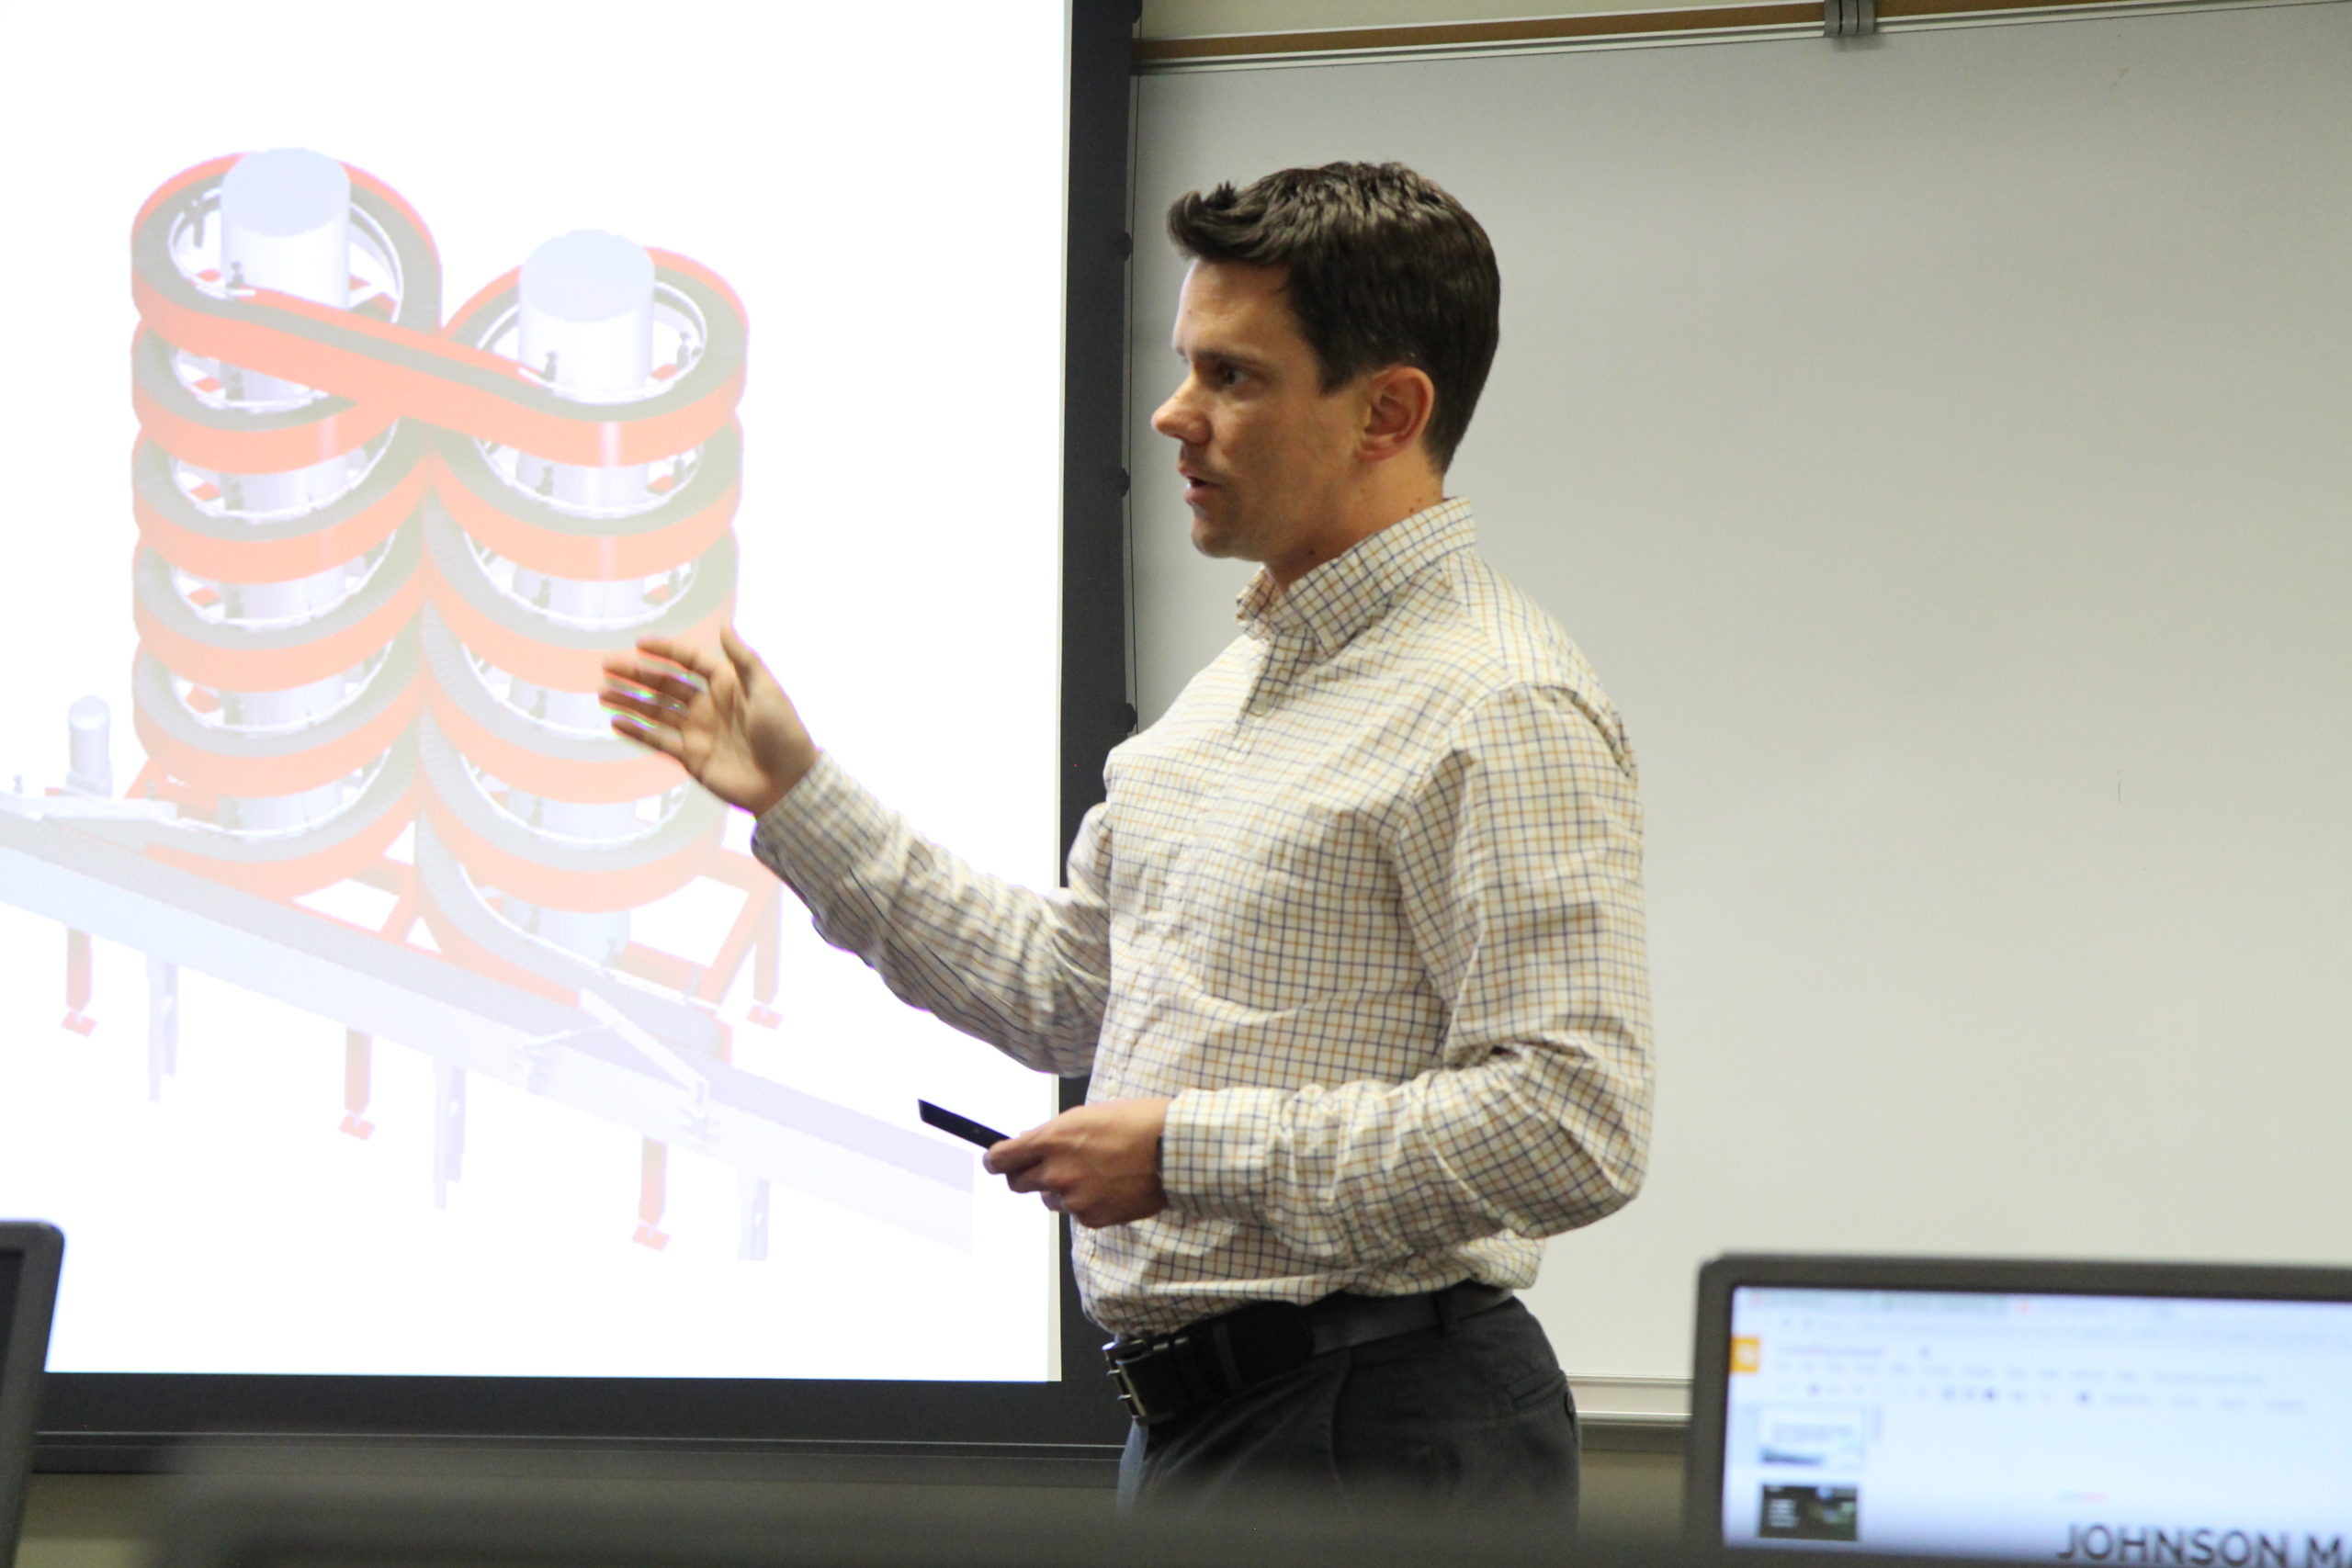 Engineering Students at Penn State Great Valley Evaluate Johnson Matthey's Production